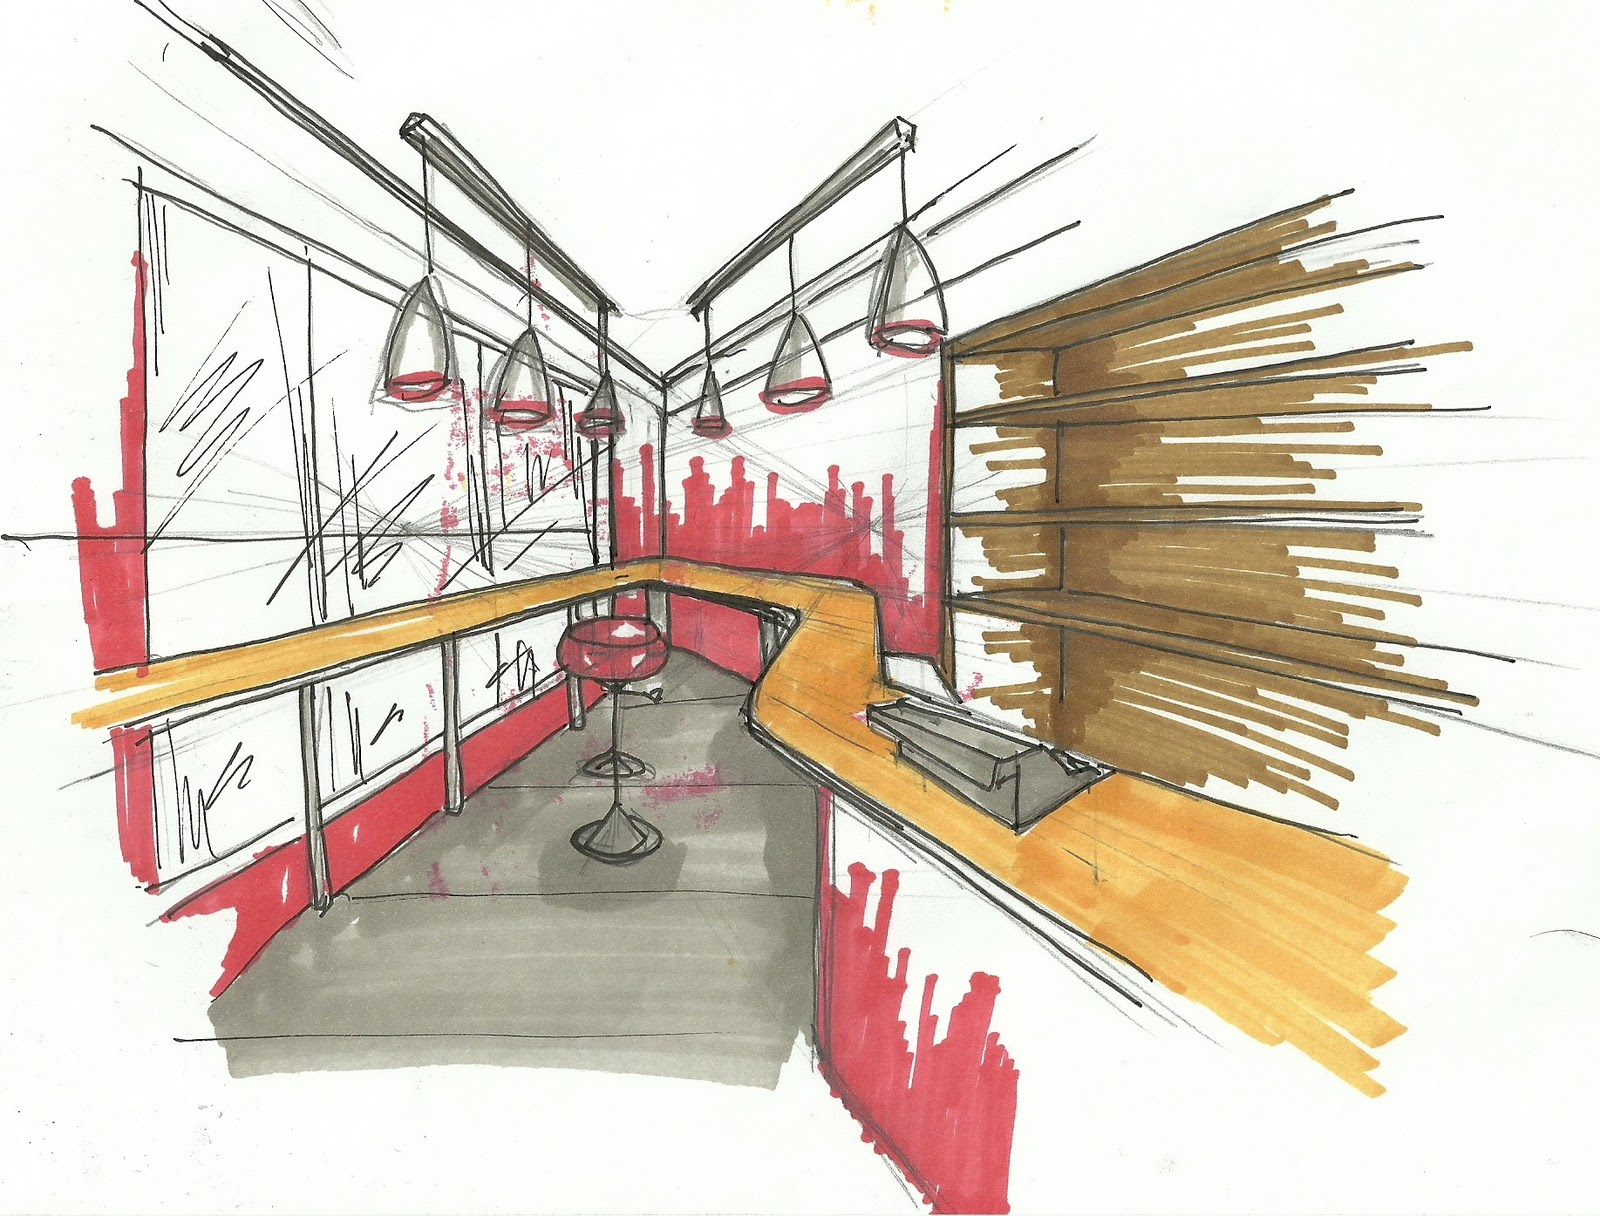 Interior Design: My Sketches For Current Project